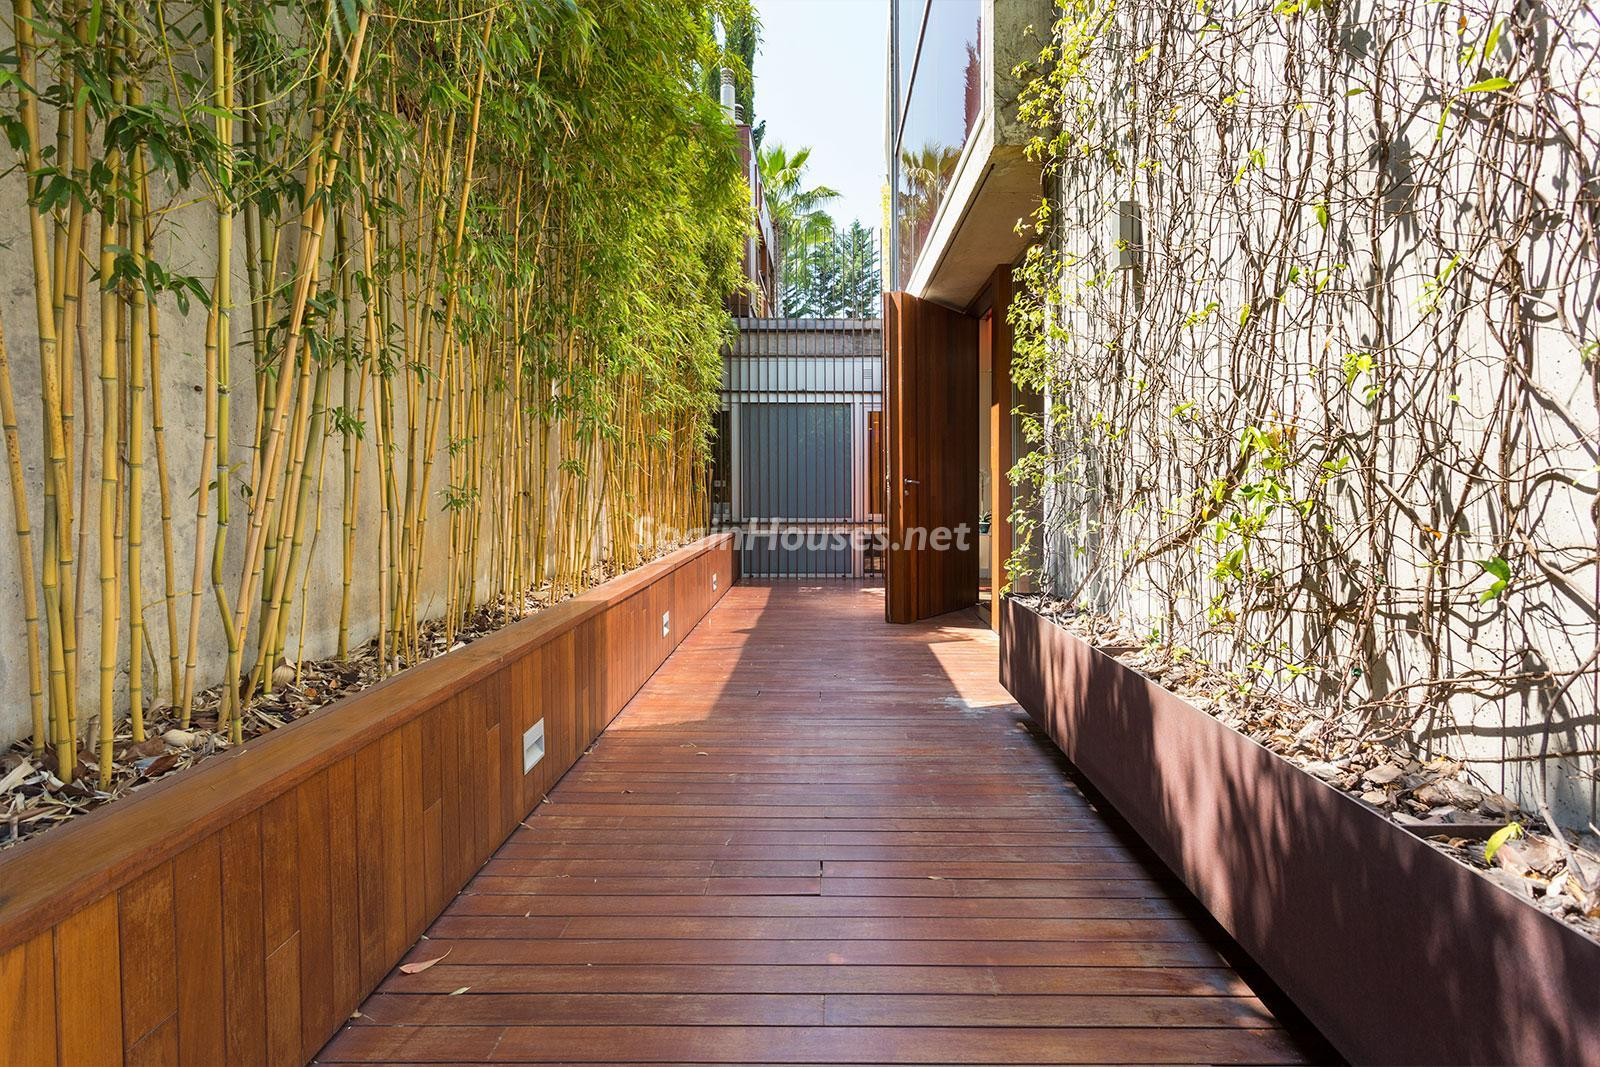 23. House for sale in Barcelona city - Superb 5 bed home in Barcelona features 2 swimming pools and a huge garden